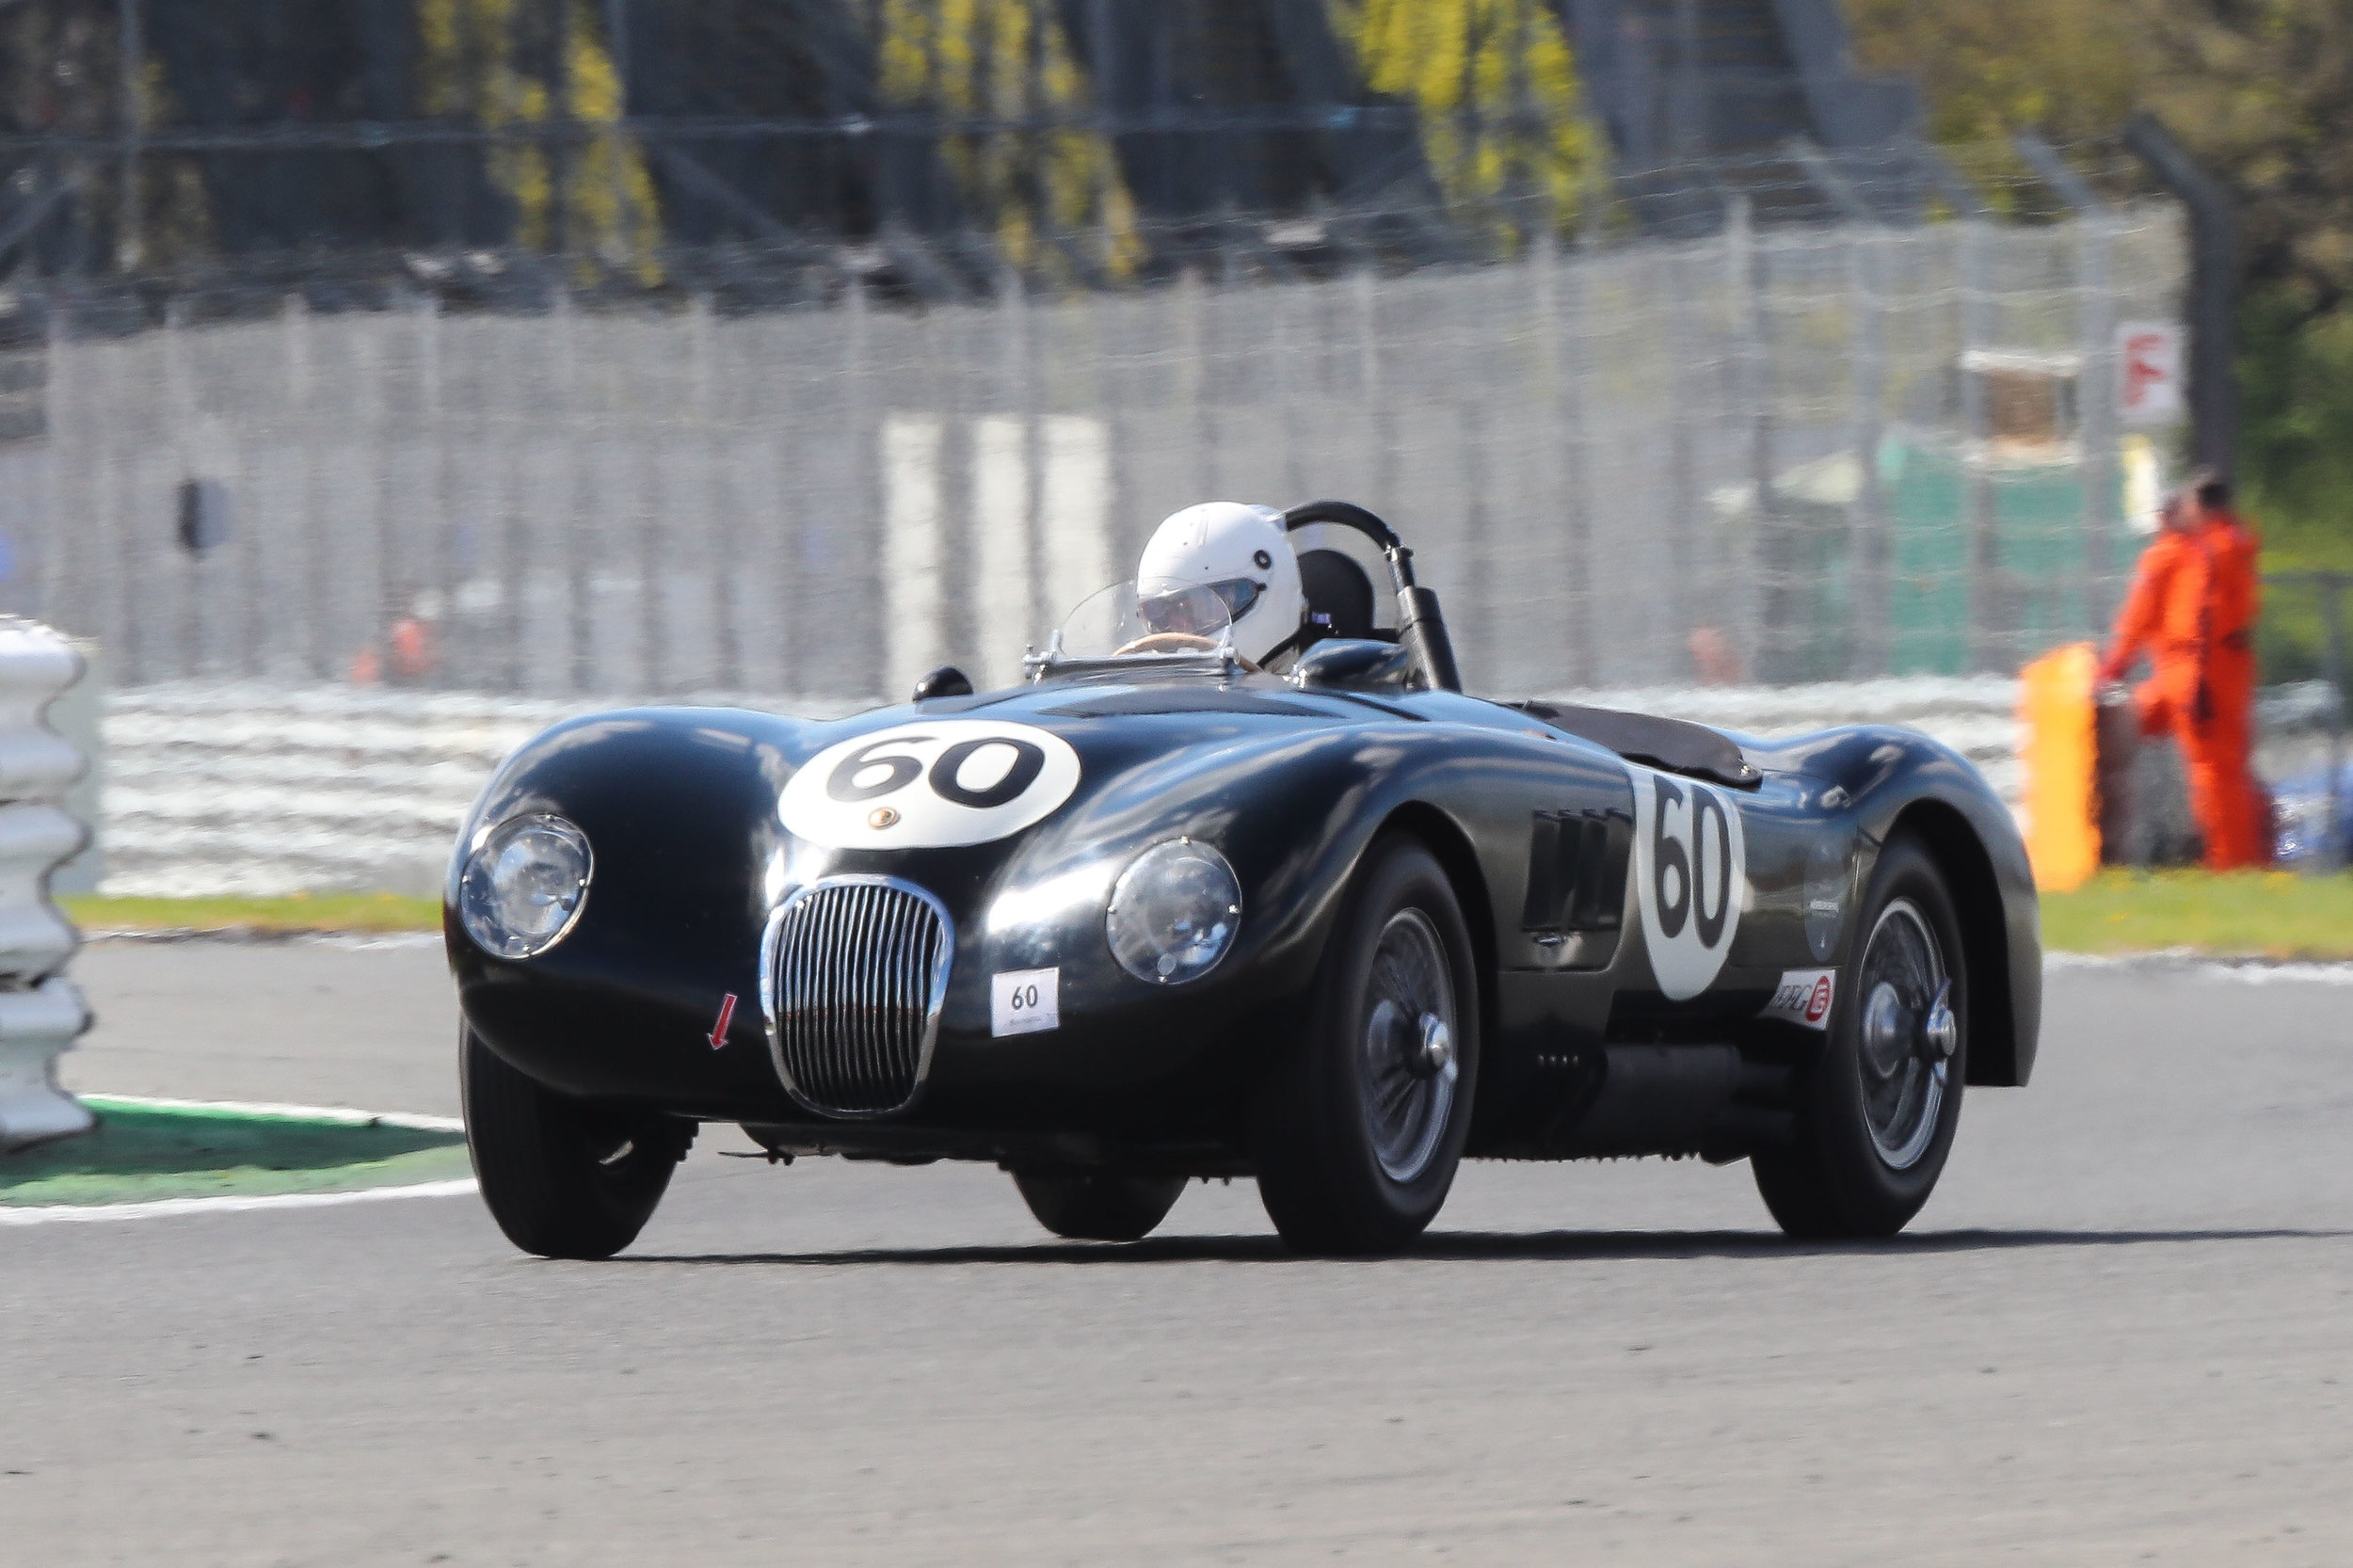 Lovely original Jaguar C type of Rüediger Friedrichs which sadly retired on lap 16 whilst running near the front               Photo - Richard Styles